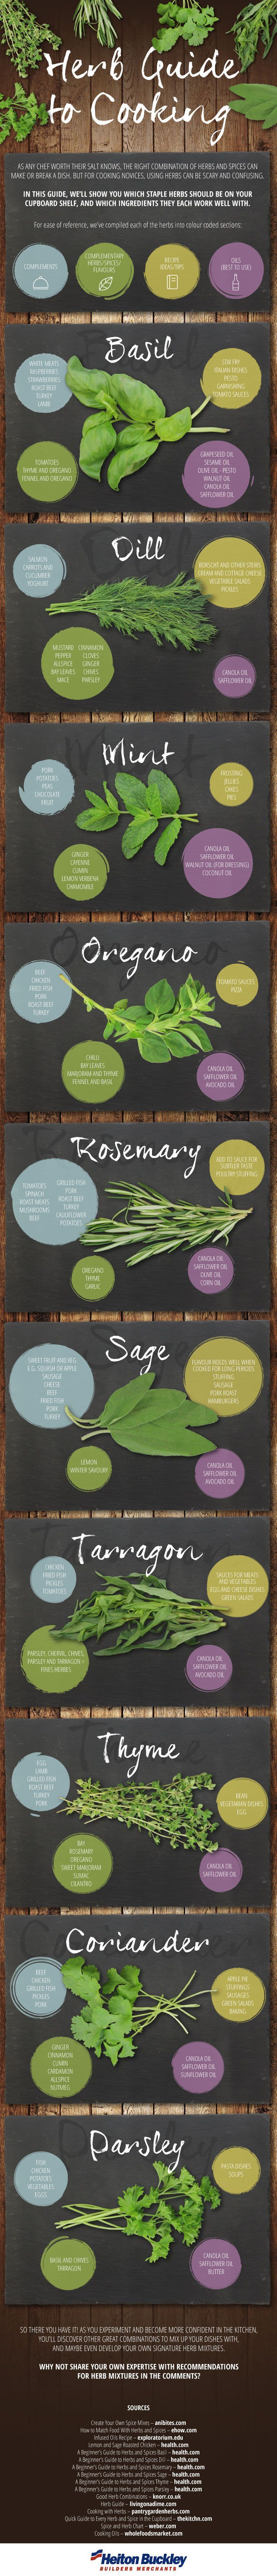 Handy Herb Guide for Cooking | Find out the best flavor combinations for herbs and food. It'll make your cooking even better!